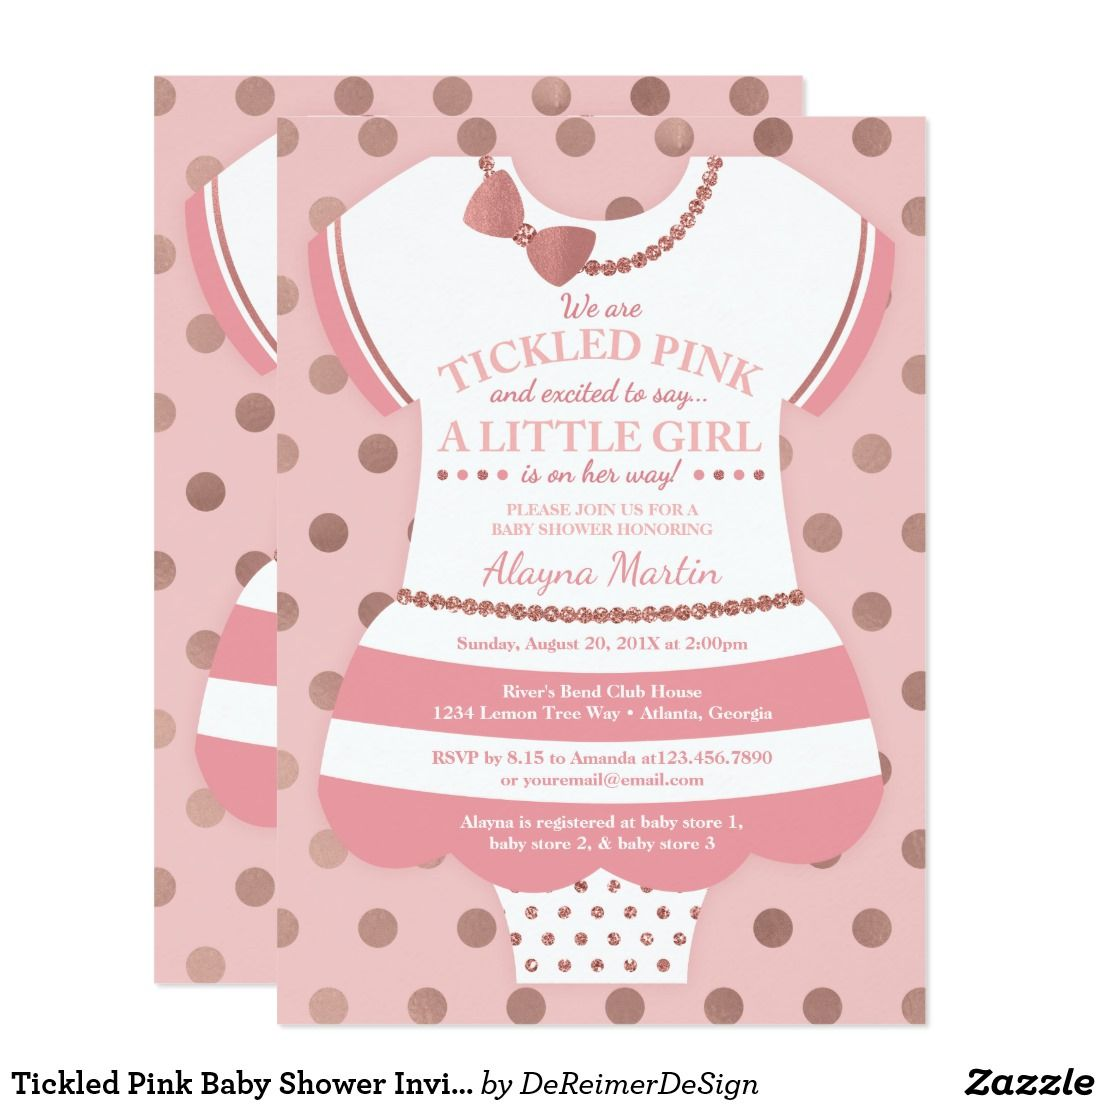 Tickled Pink Baby Shower Invitation, Faux Glitter Card | Invitations ...